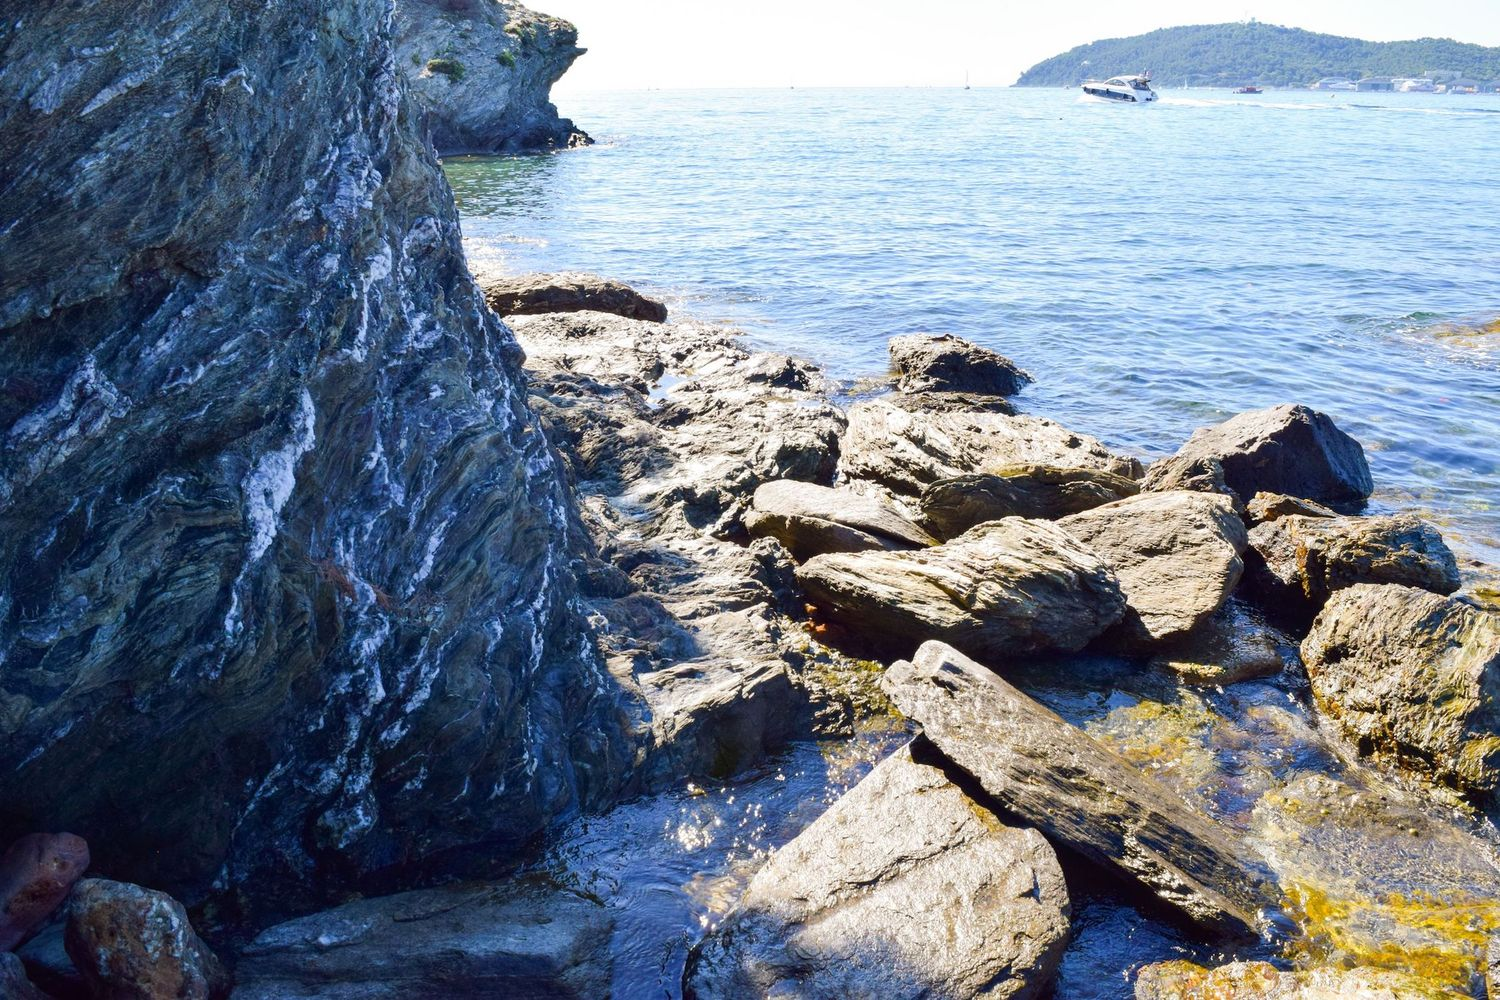 Walking along the rocky coast of Toulon towards Plage De La Mitre, France